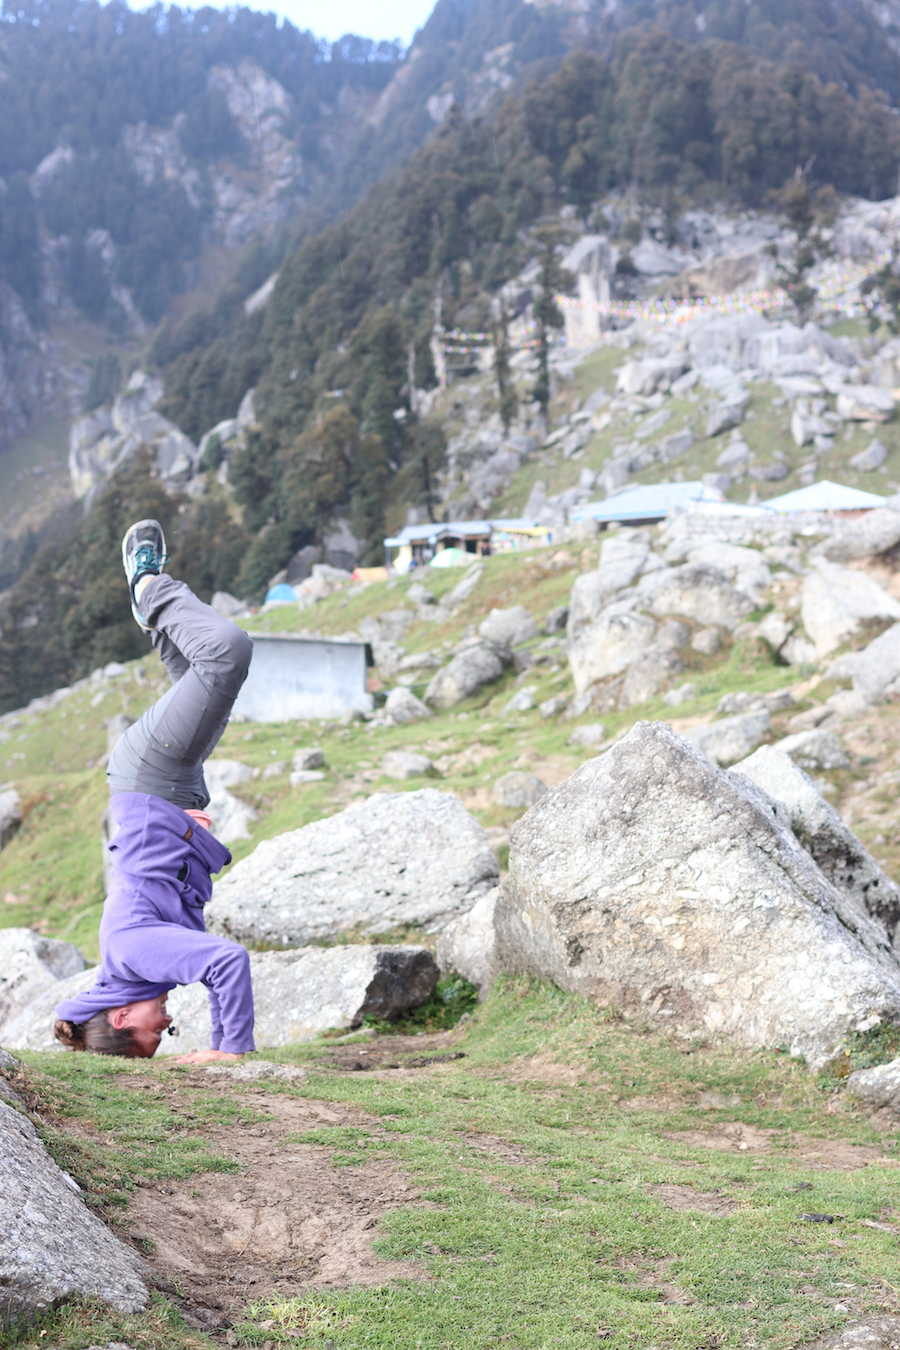 Our new friend Marnie - whom we met on the bus -doing some post-snack headstands at Triund. We feasted on some moong dal and chai in one of the stalls found at the top while I recovered from altitdude sickness.